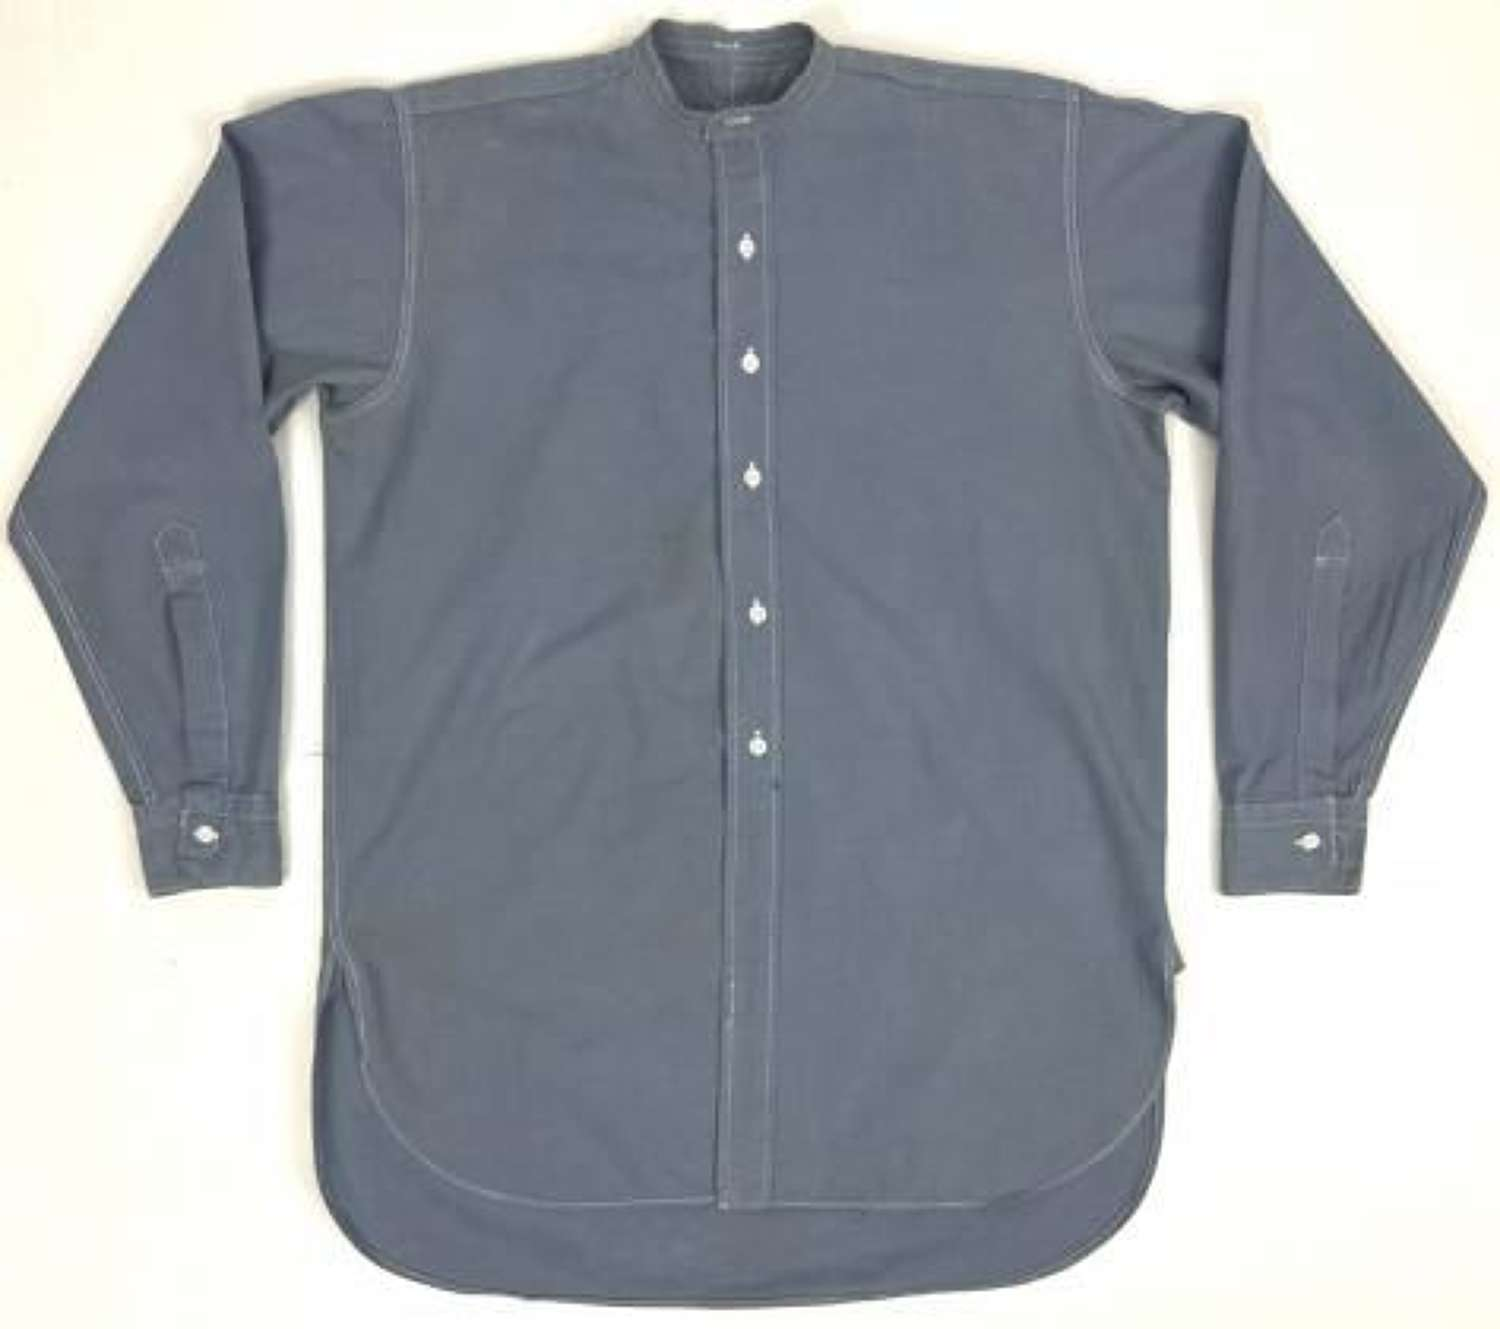 Original RAF Ordinary Airman's Shirt - Size 2